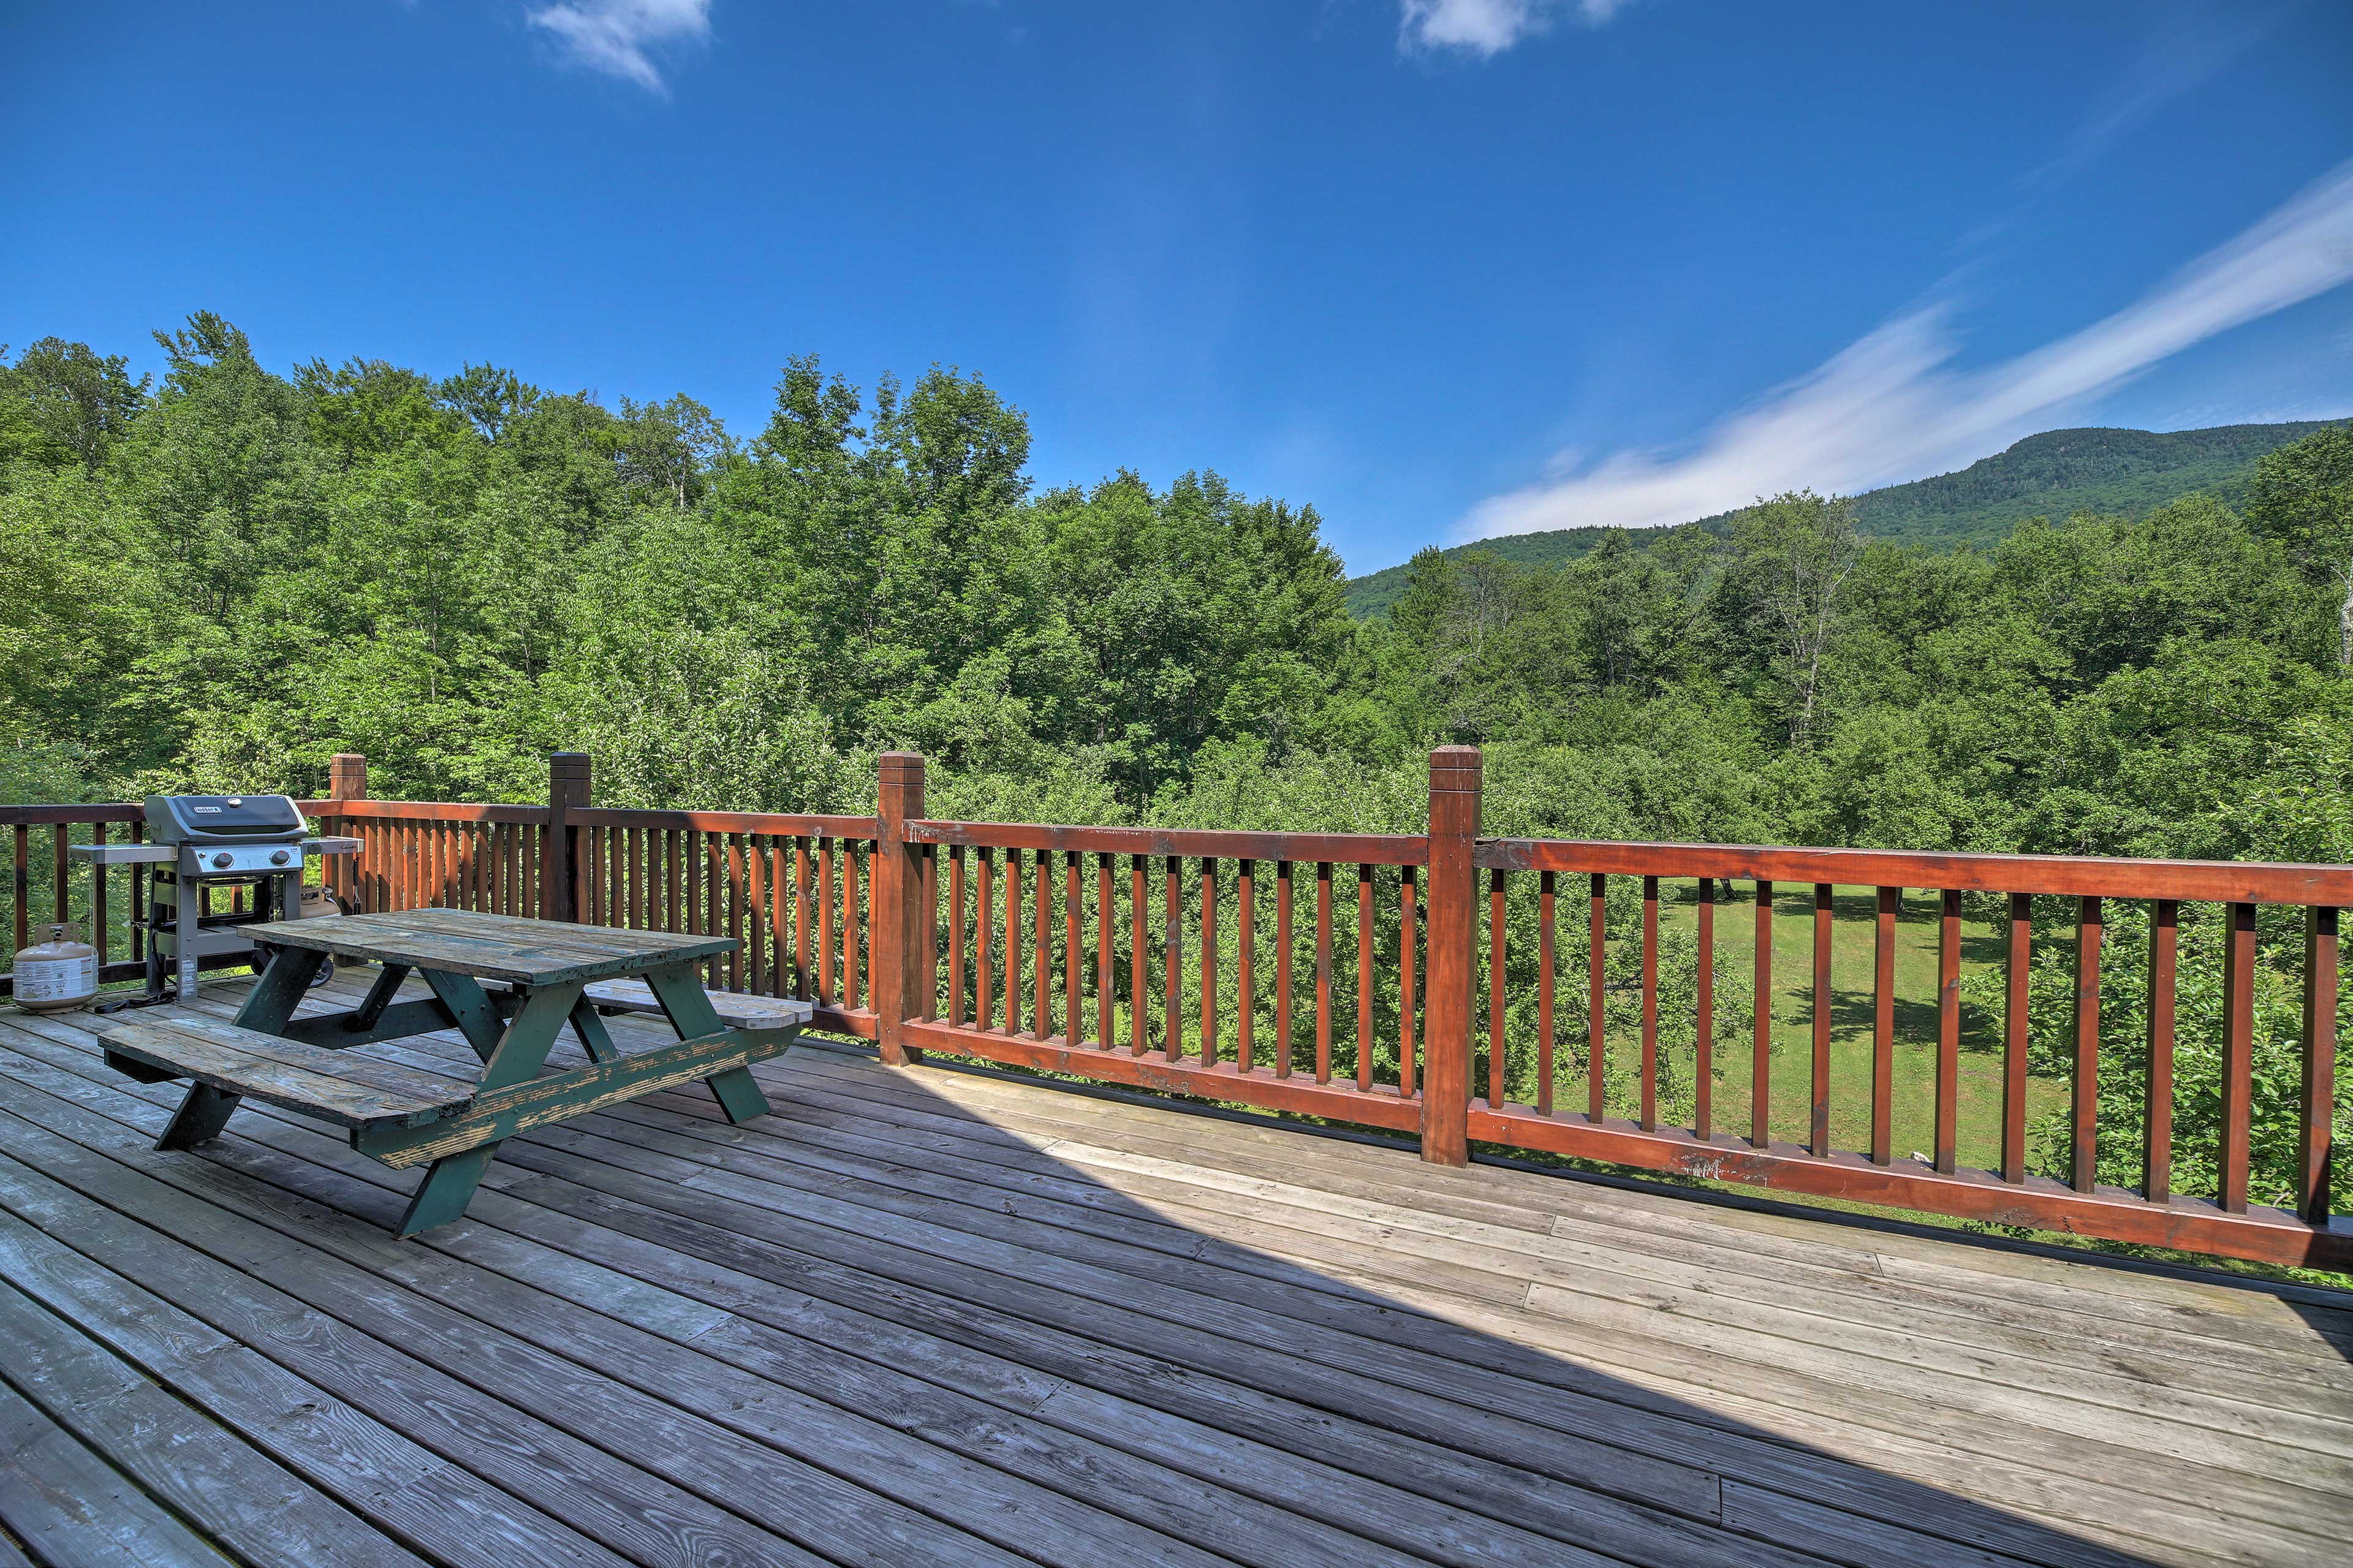 Sit on the deck and soak in the mountain views.